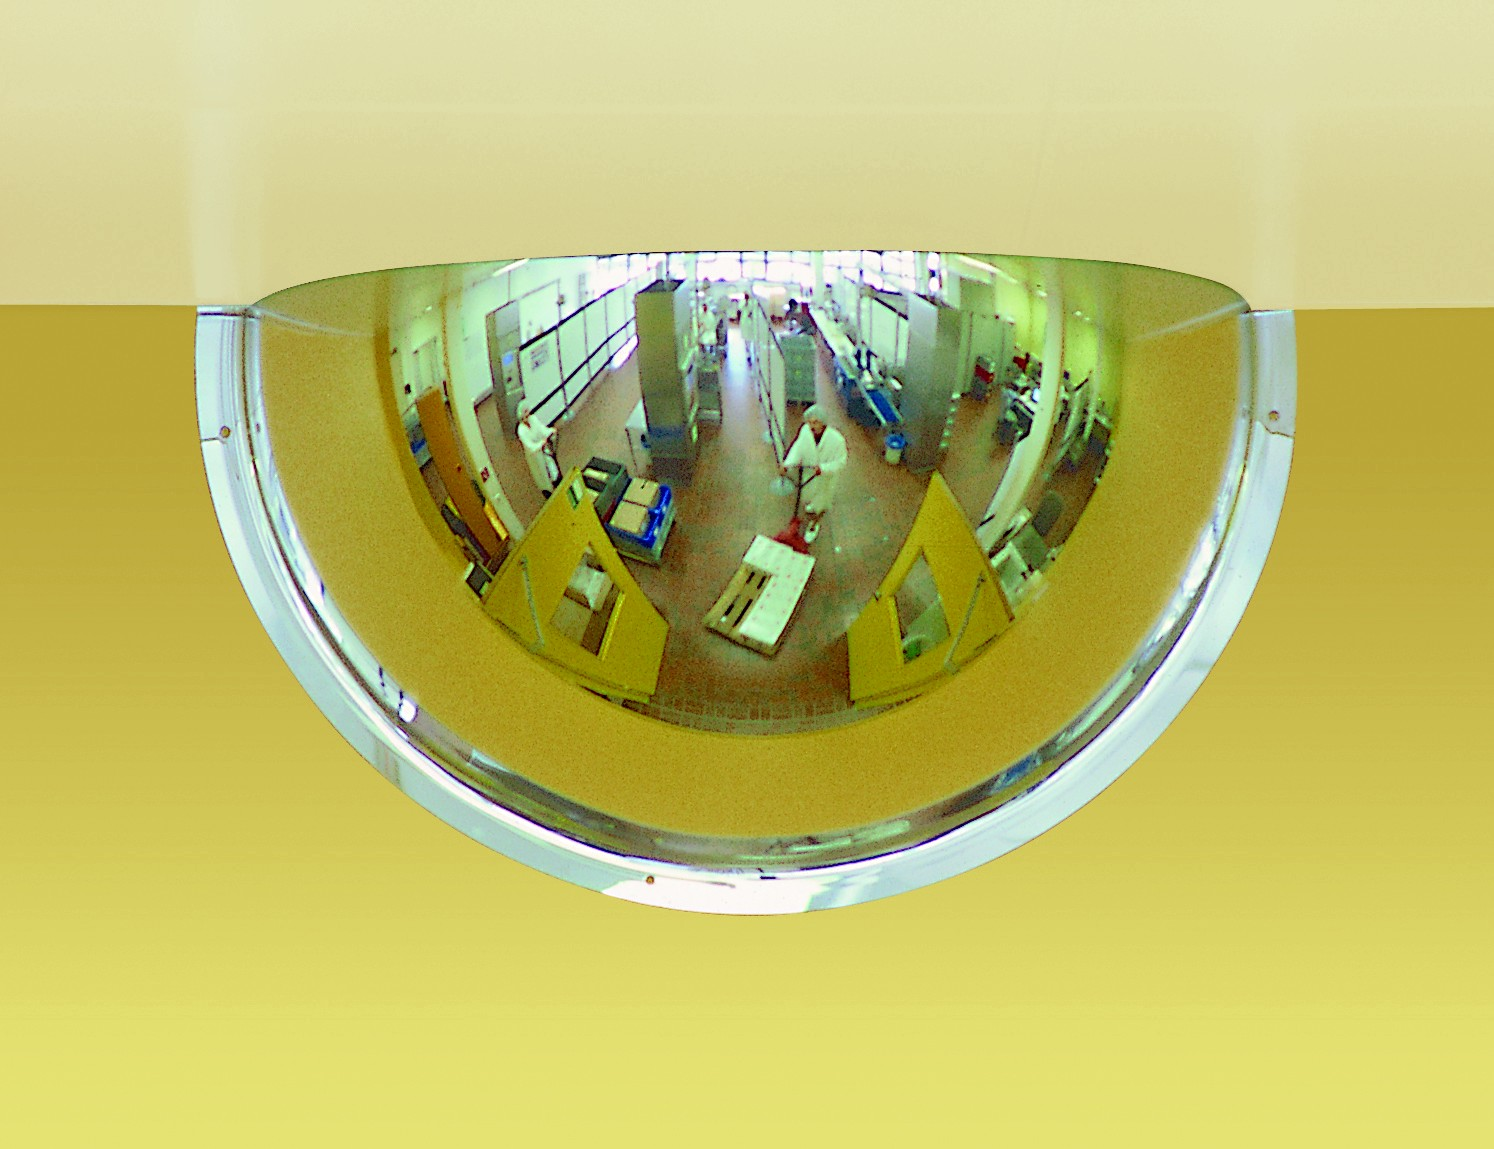 180 Panoramic Degree Mirror